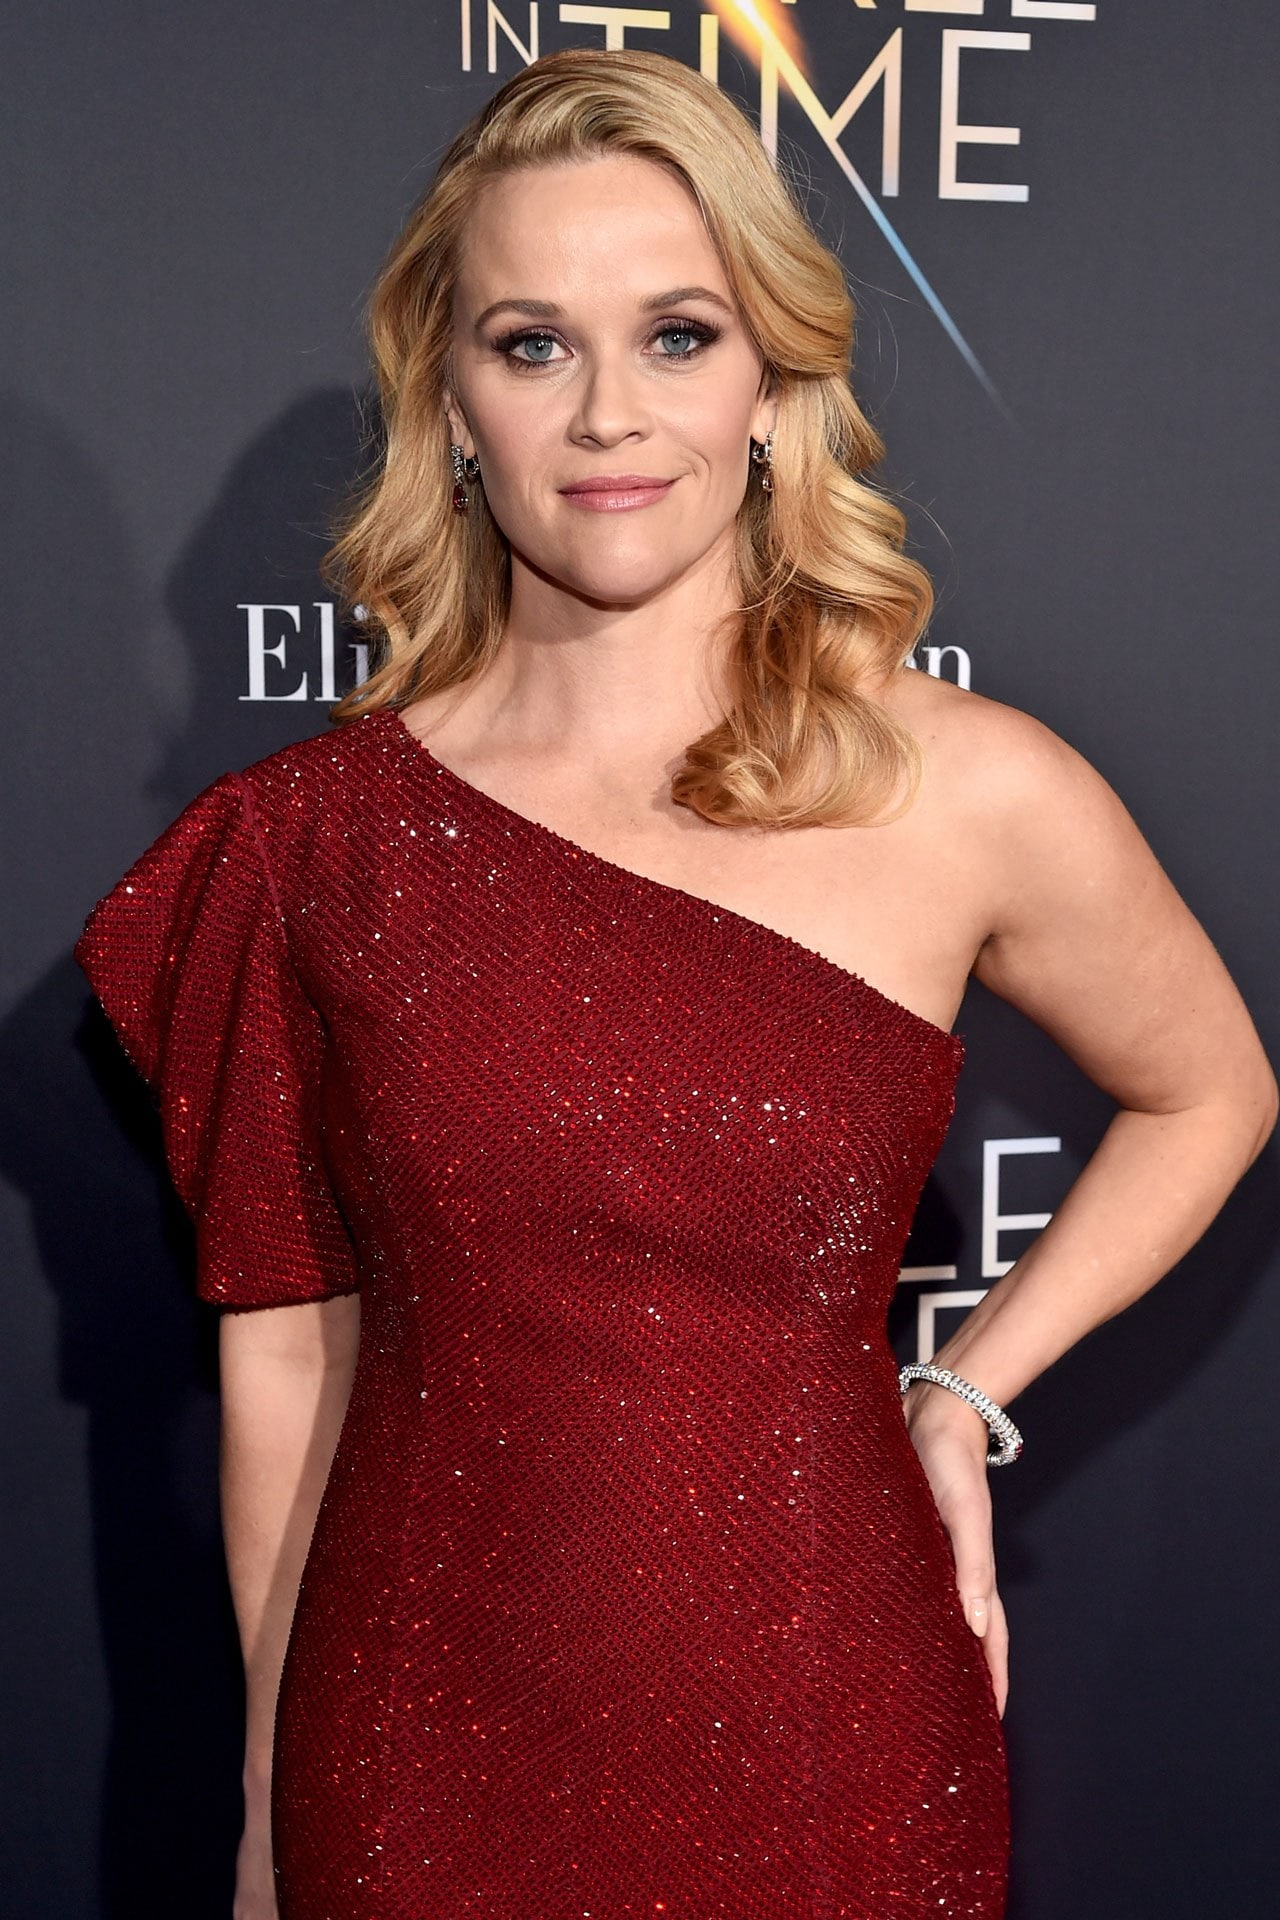 Reese Witherspoon, actor, producer and activist for women in Hollywood